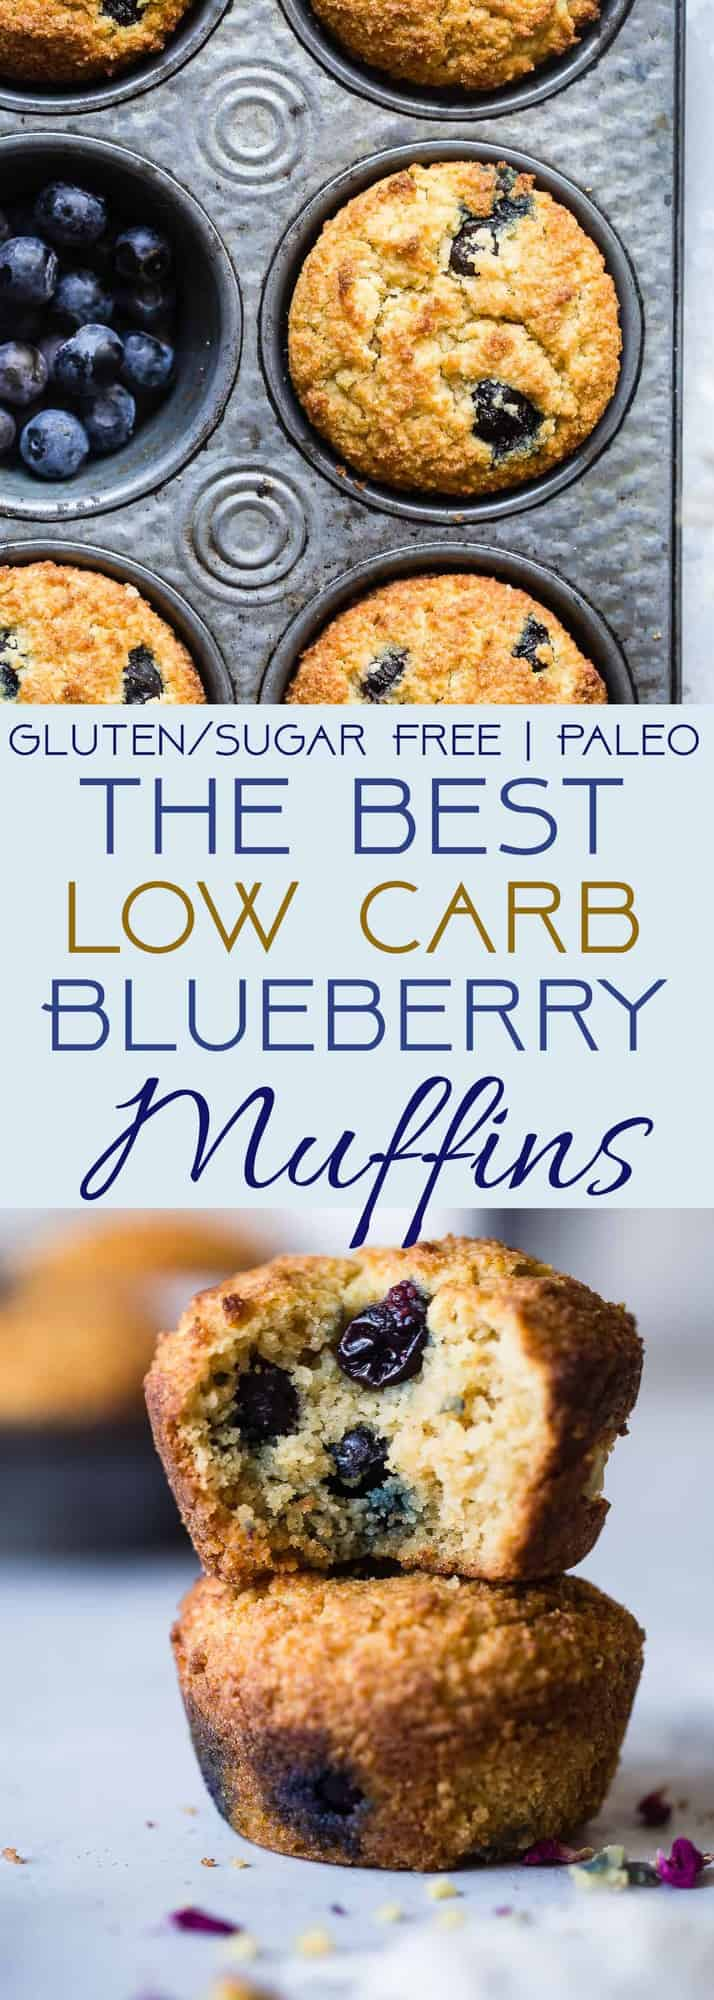 The BEST Low Carb, Sugar Free Blueberry Muffins - SO moist and tender, you'll never believe they are gluten/grain/dairy/sugar free and keto friendly! Perfect for breakfast or snacks for kids OR adults! | #Foodfaithfitness | #Lowcarb #Healthy #Glutenfree #Keto #Sugarfree